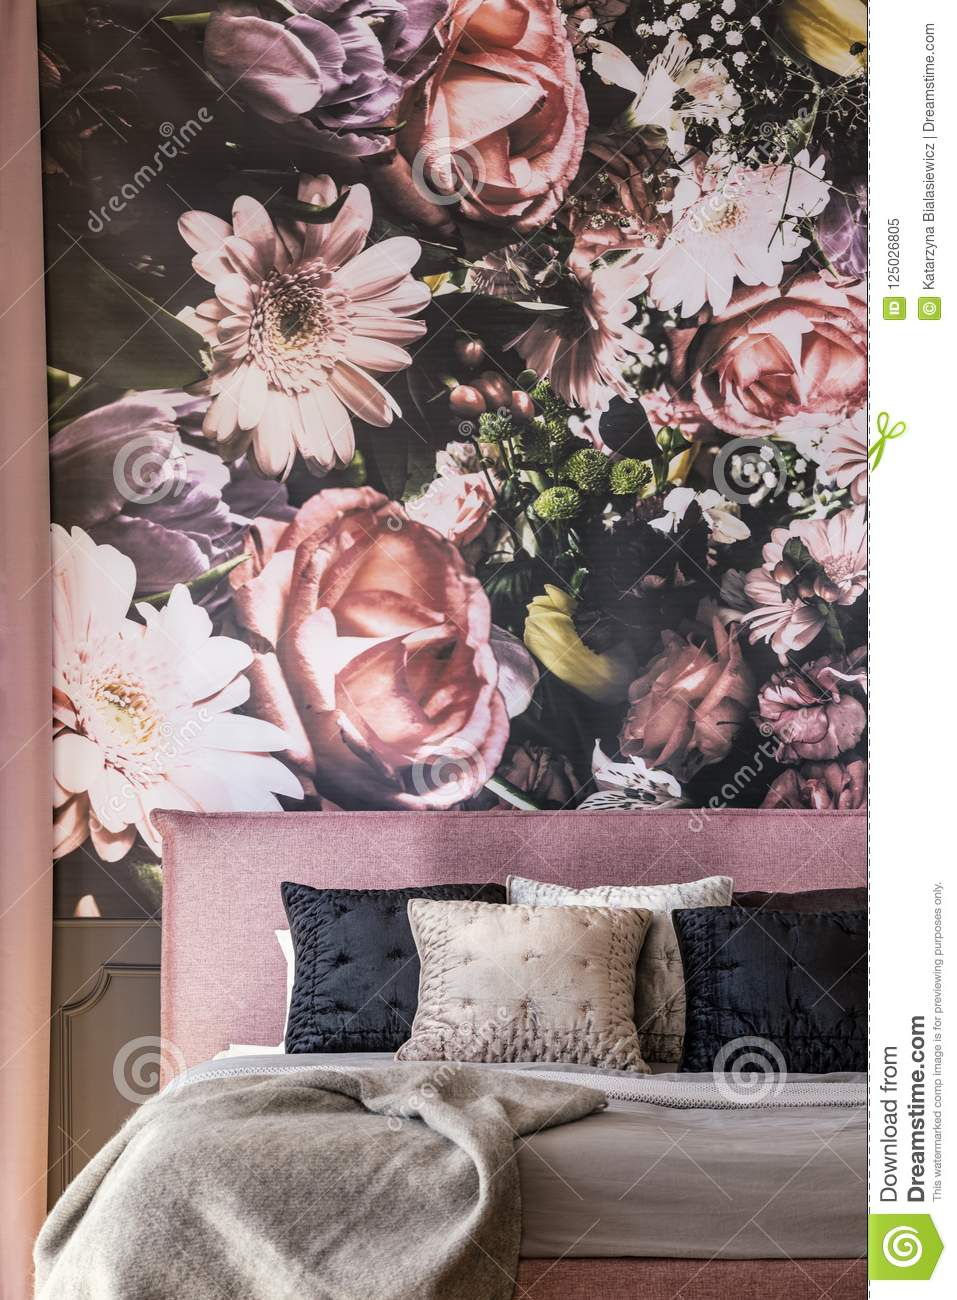 Pink And Black Pillows On Bed Against Flowers Wallpaper In Overw ...